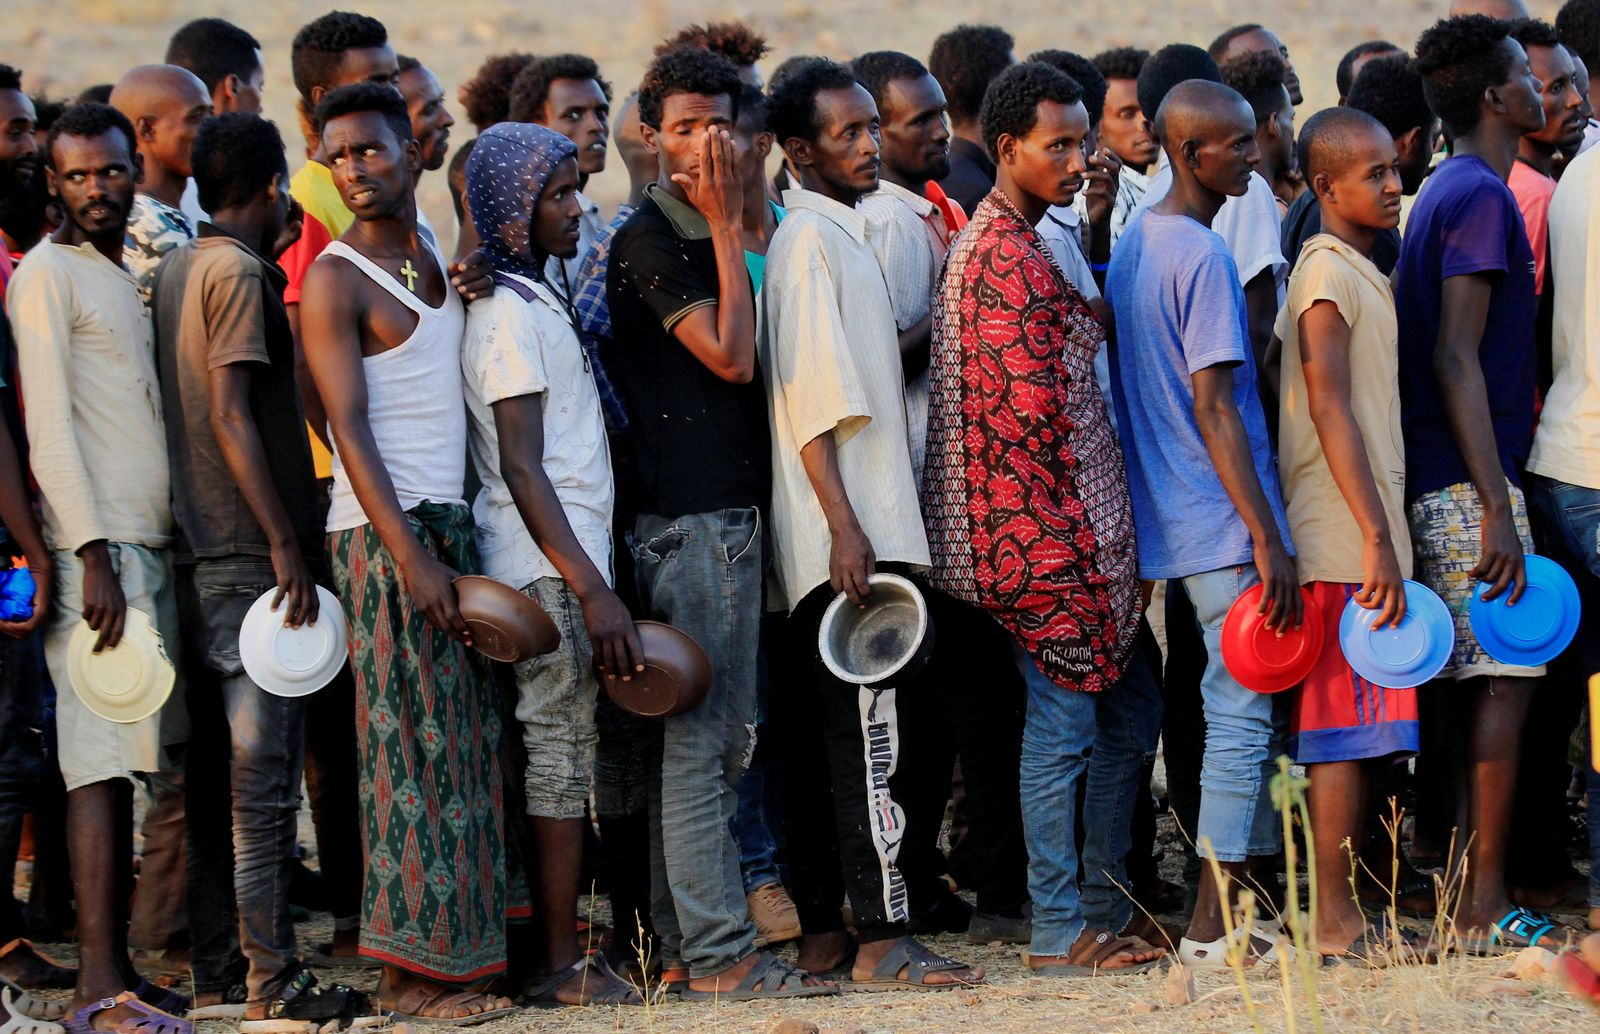 Ethiopian men who fled war in Tigray region, queue for wet food ration at the Um-Rakoba camp, on the Sudan-Ethiopia border in Al-Qadarif state